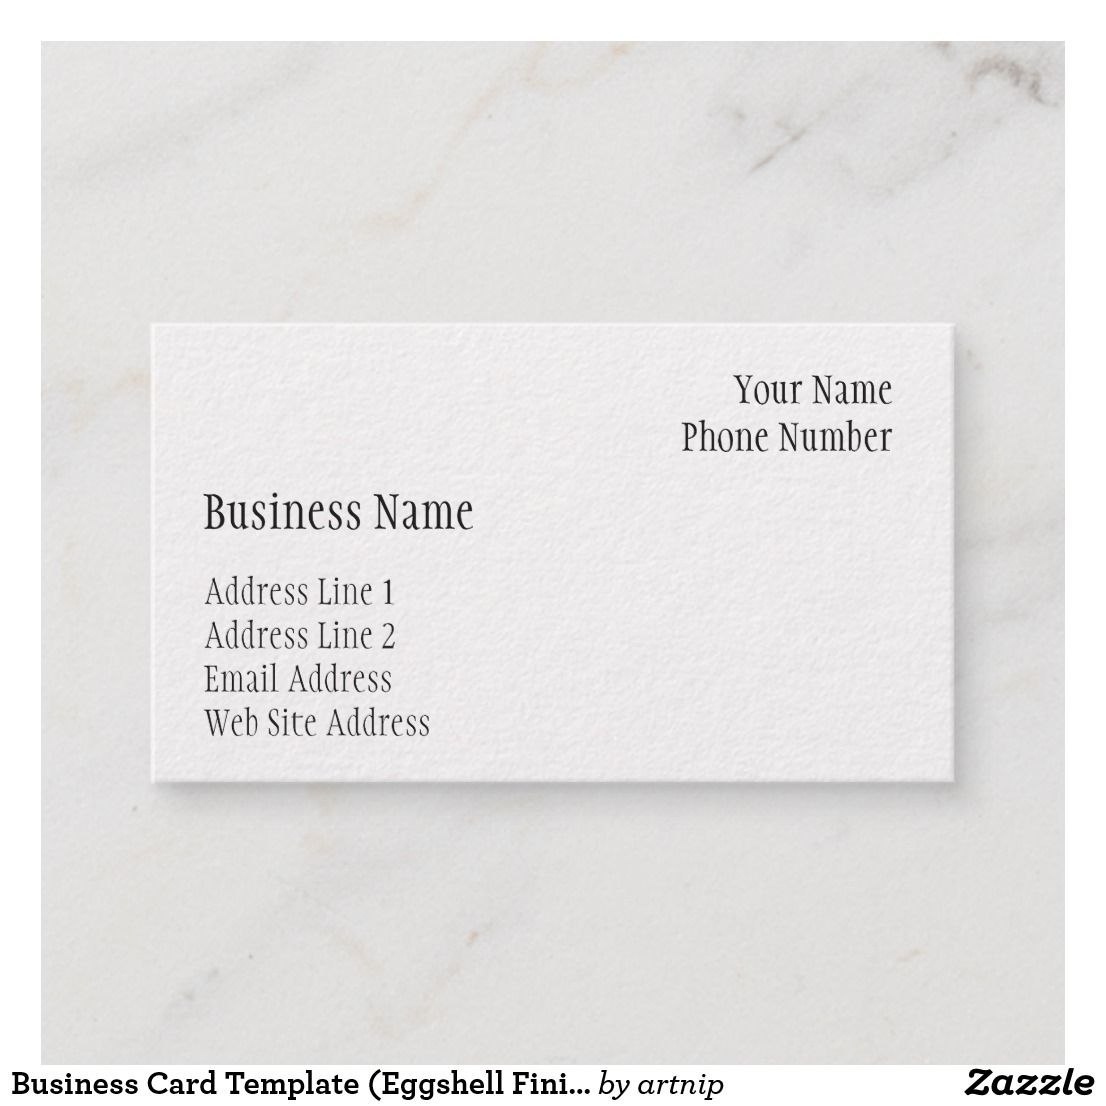 Business Card Template Eggshell Finish  Zazzle  Business Within Cards Against Humanity Template